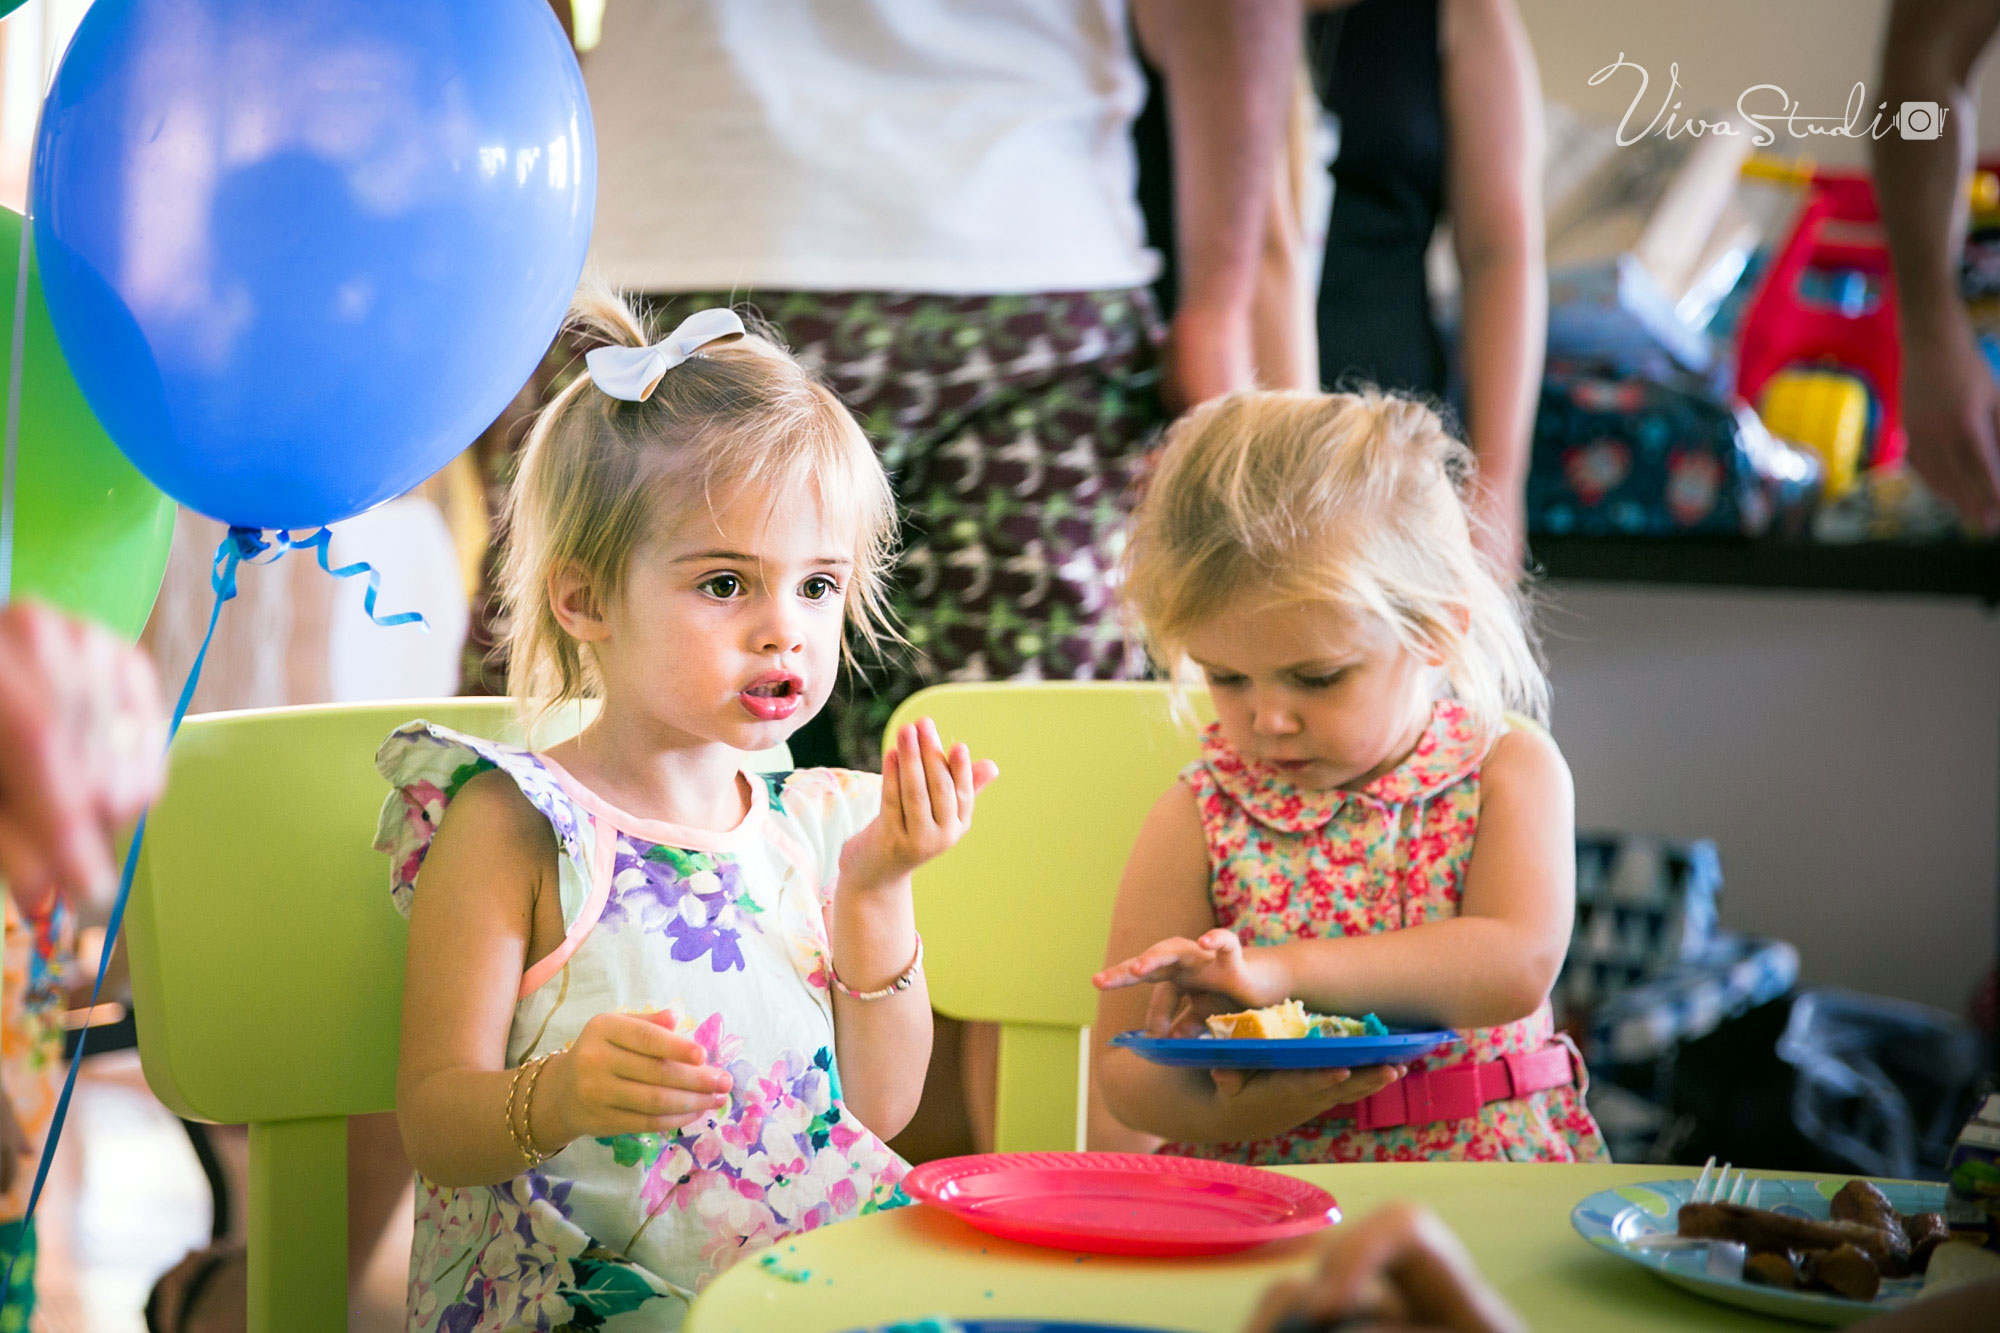 VivaStudio_Design_Photograpphy_Brisbane_Baby_Sidney_1st_Birthday_Party0145-org